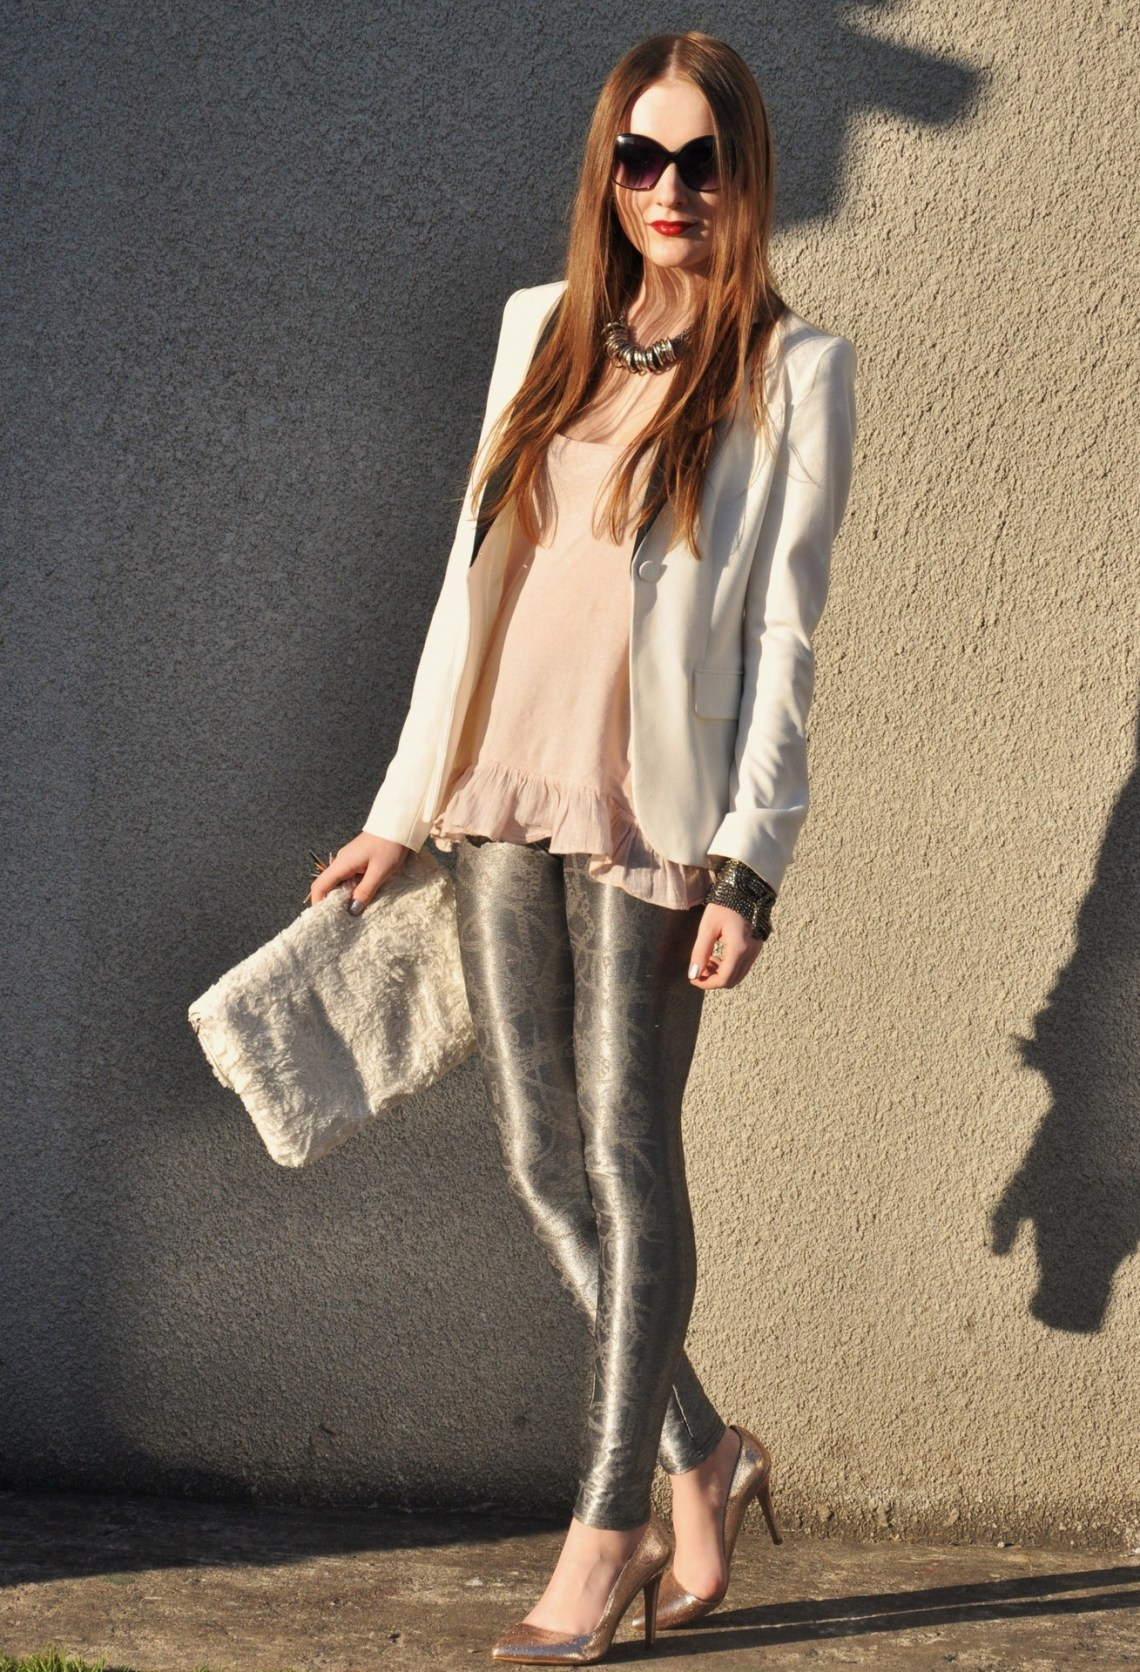 Womens Casual Fashion Style - The WoW Style